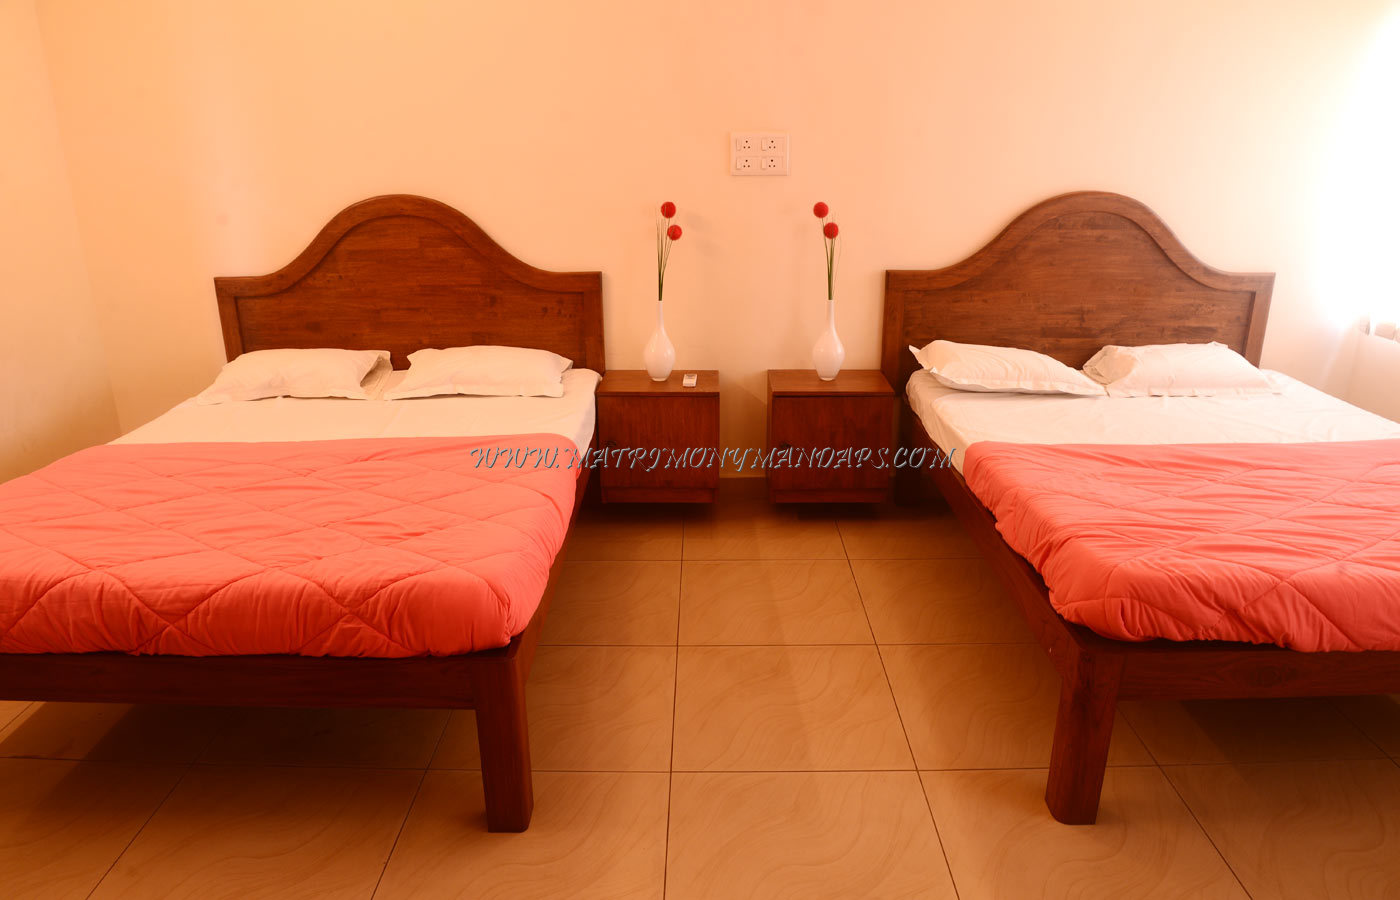 Sivasakthi Thirumana Mandapam - Rooms